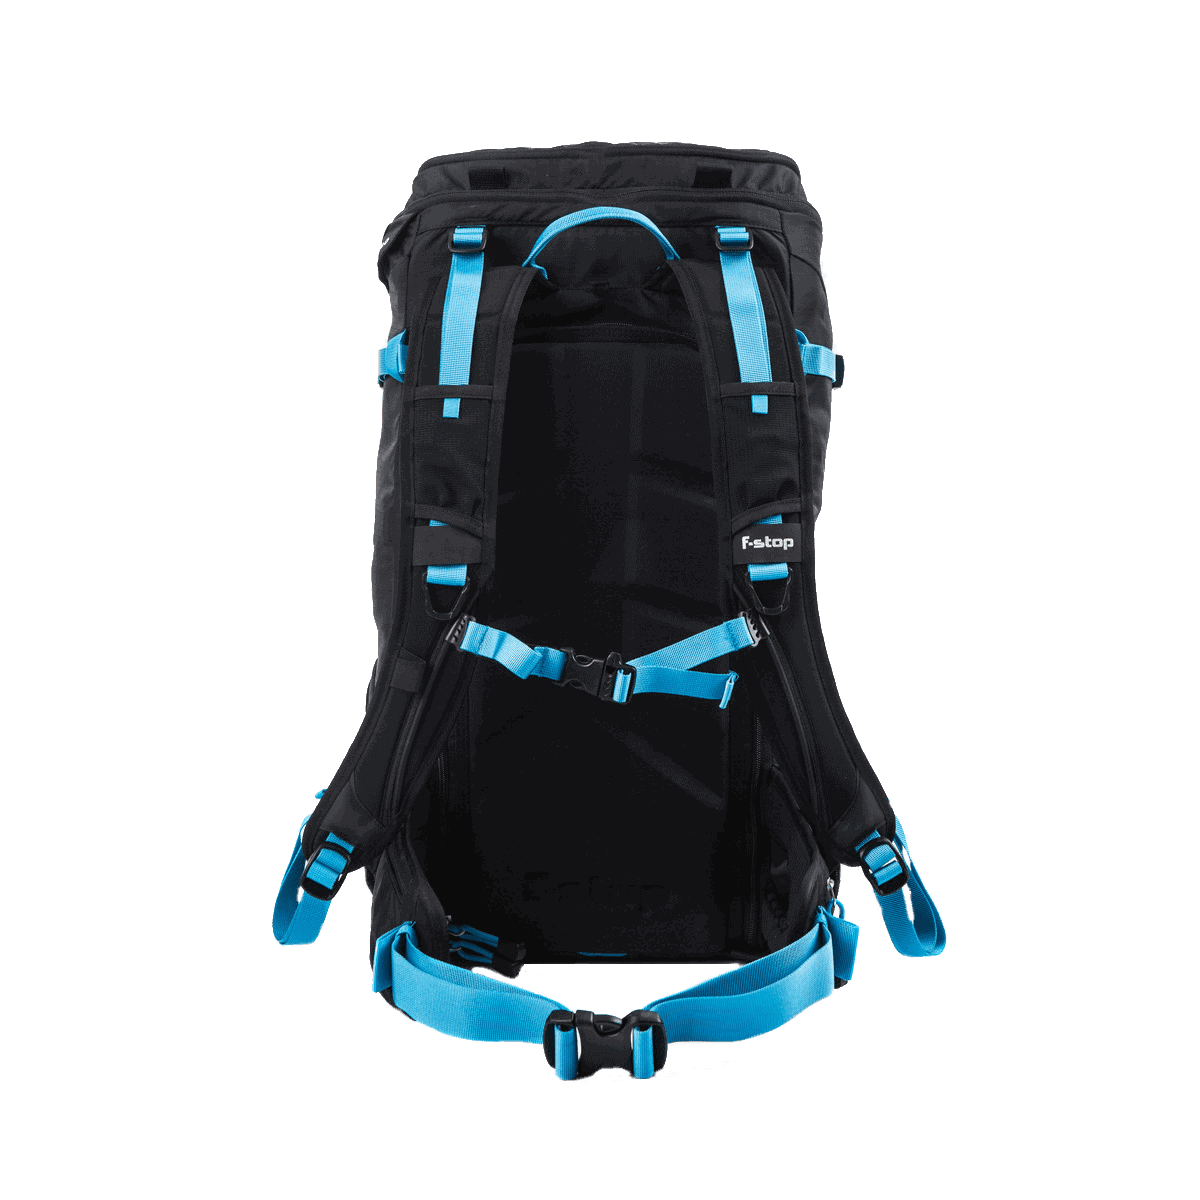 loka ul backpack fstop gear francesco gola 3